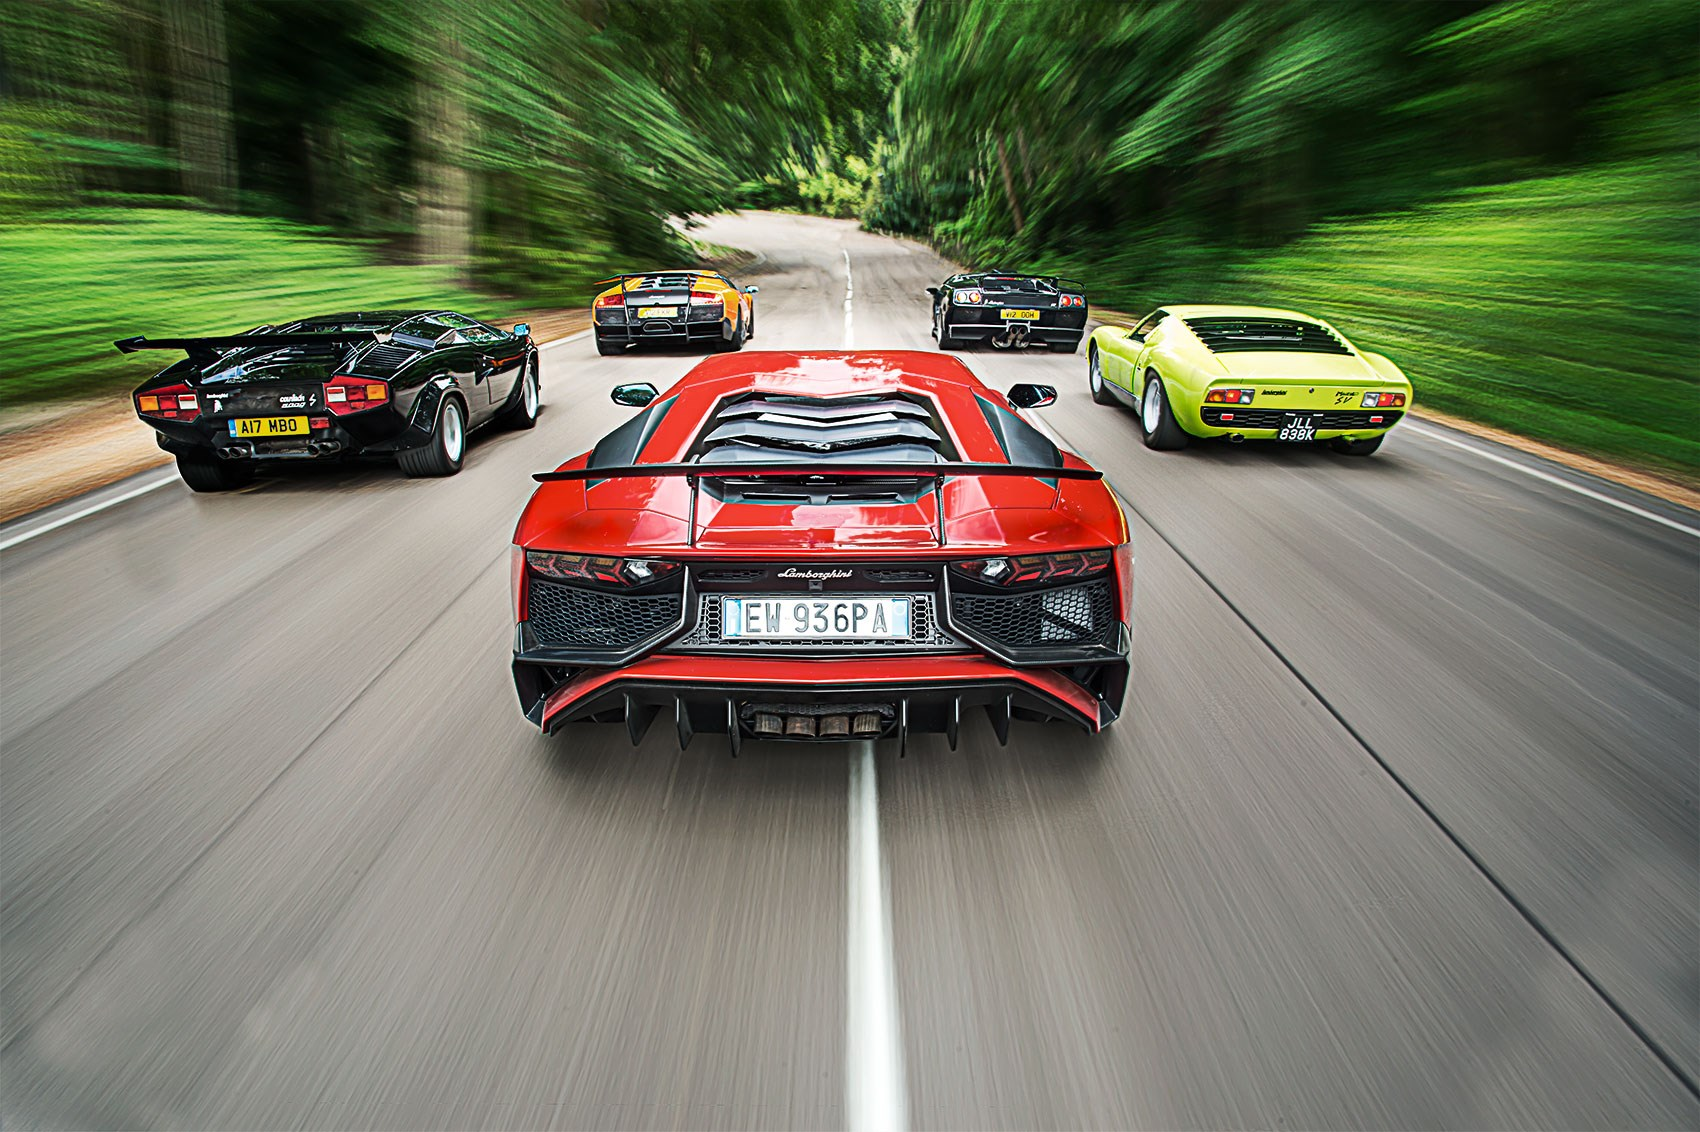 lamborghin sv lamborghini cars sale for murcielago rare speed news top up car